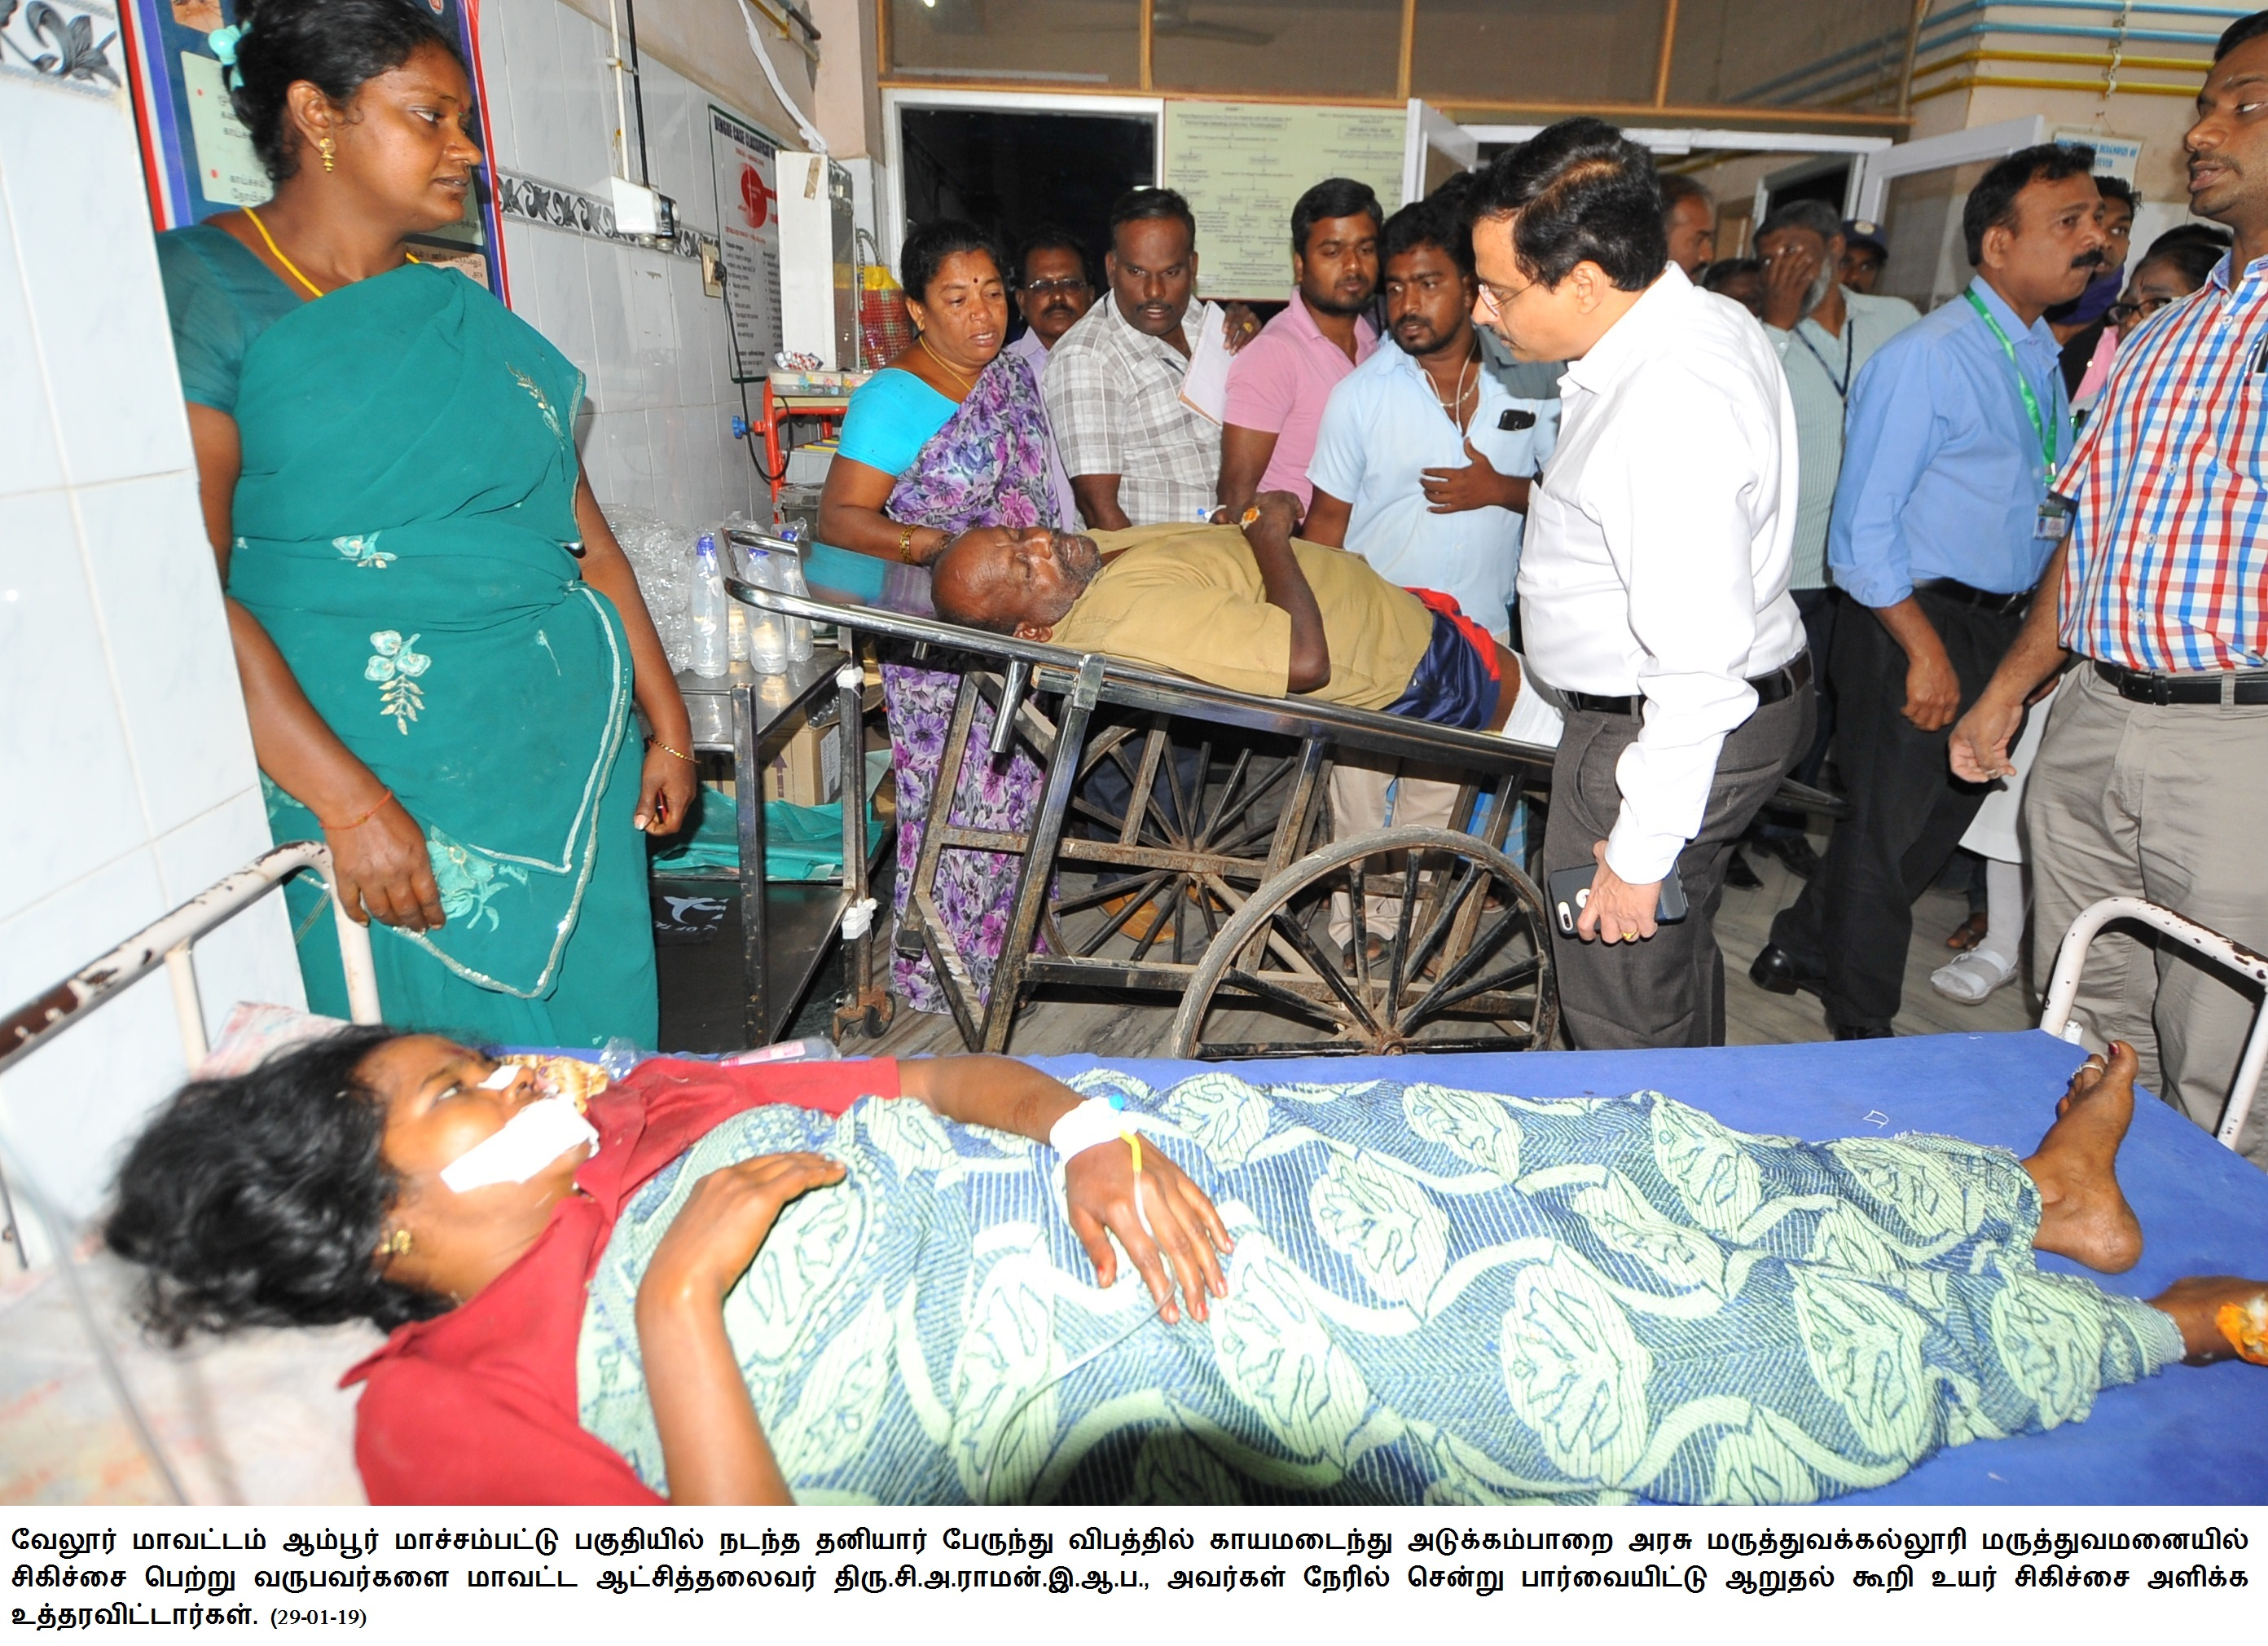 District Collector visited the injured persons in the bus accident